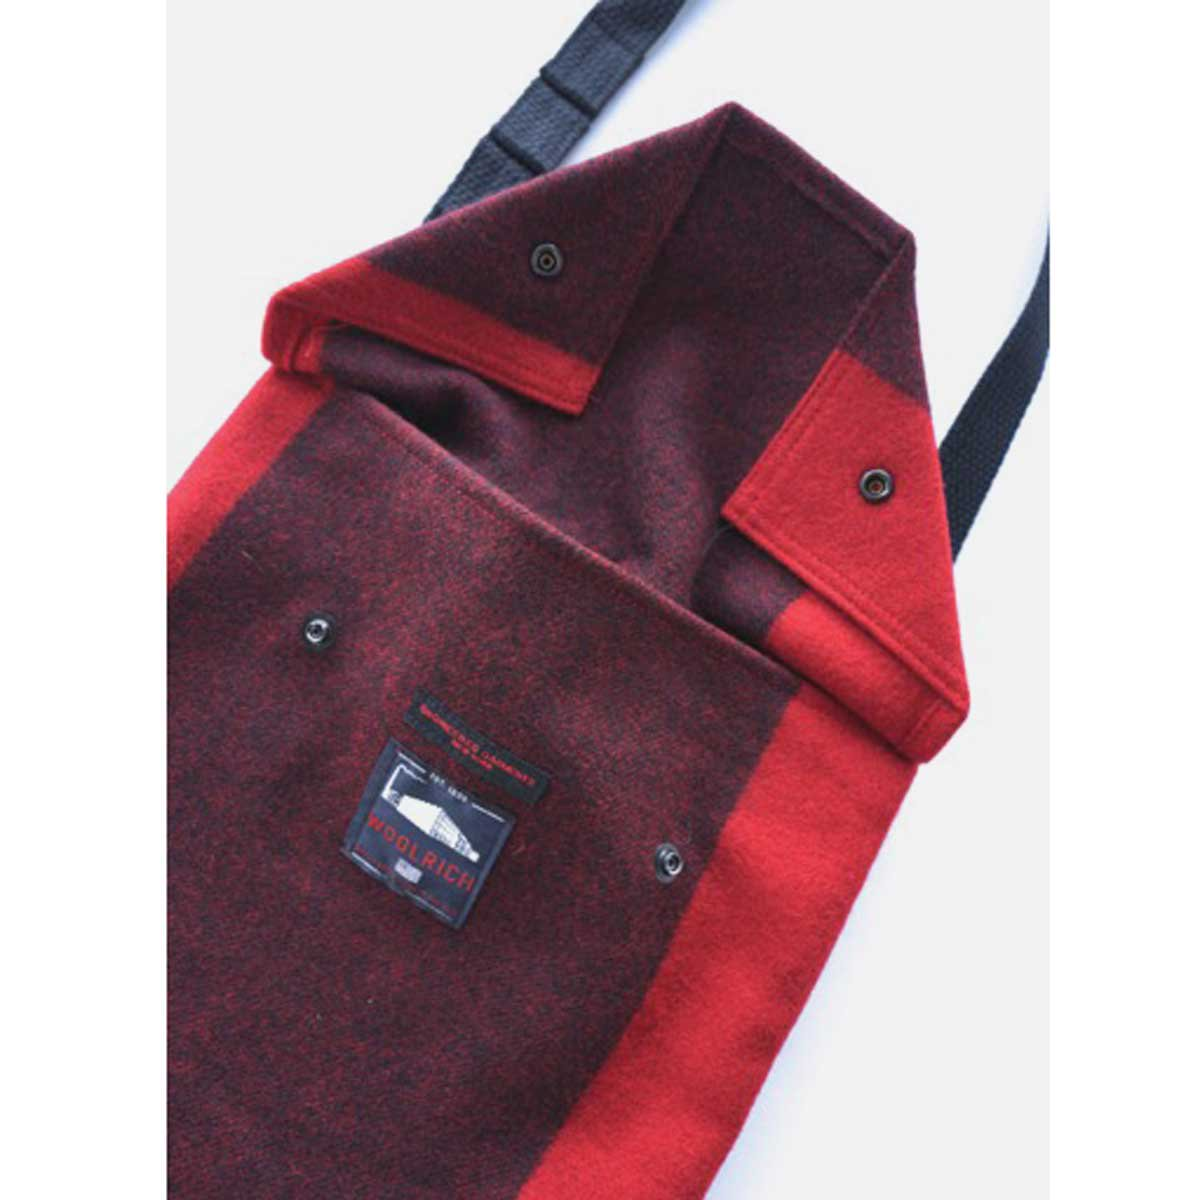 Engineered Garments Shoulder Pouch - Big Plaid Wool Melton  (Red)4